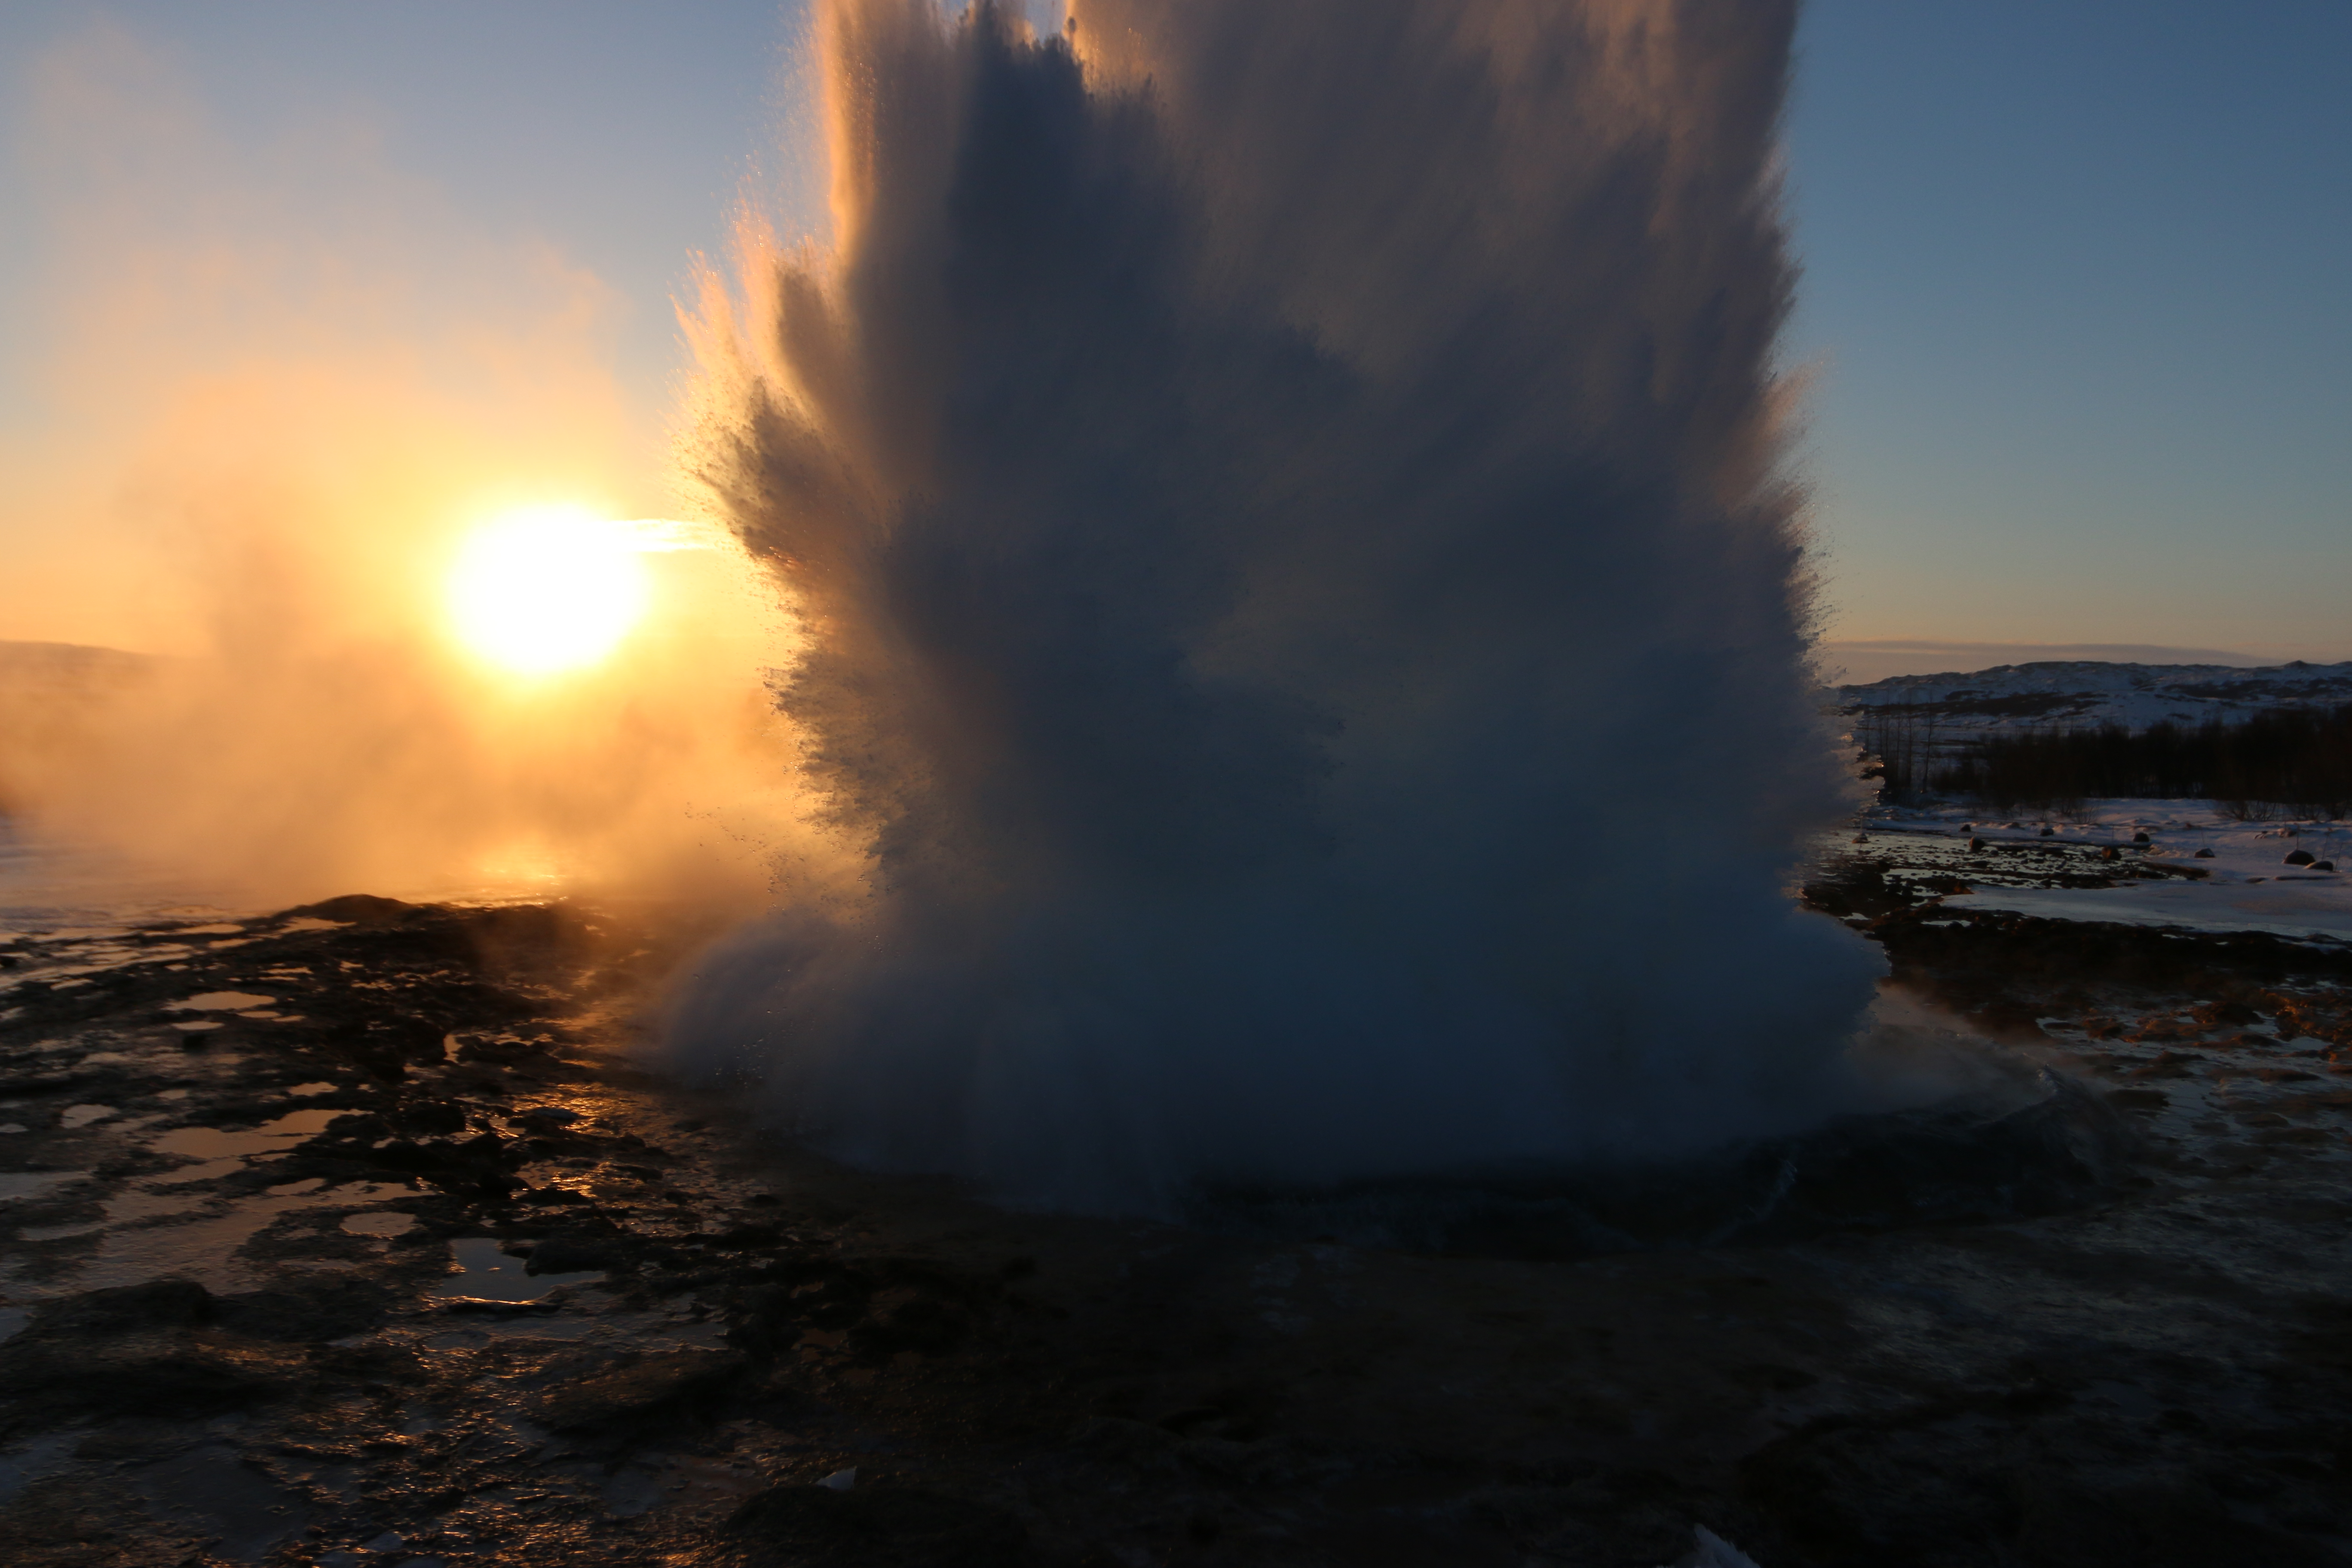 Geysir exploding in front of Iceland's perfect, if ephemeral, golden winter sun.